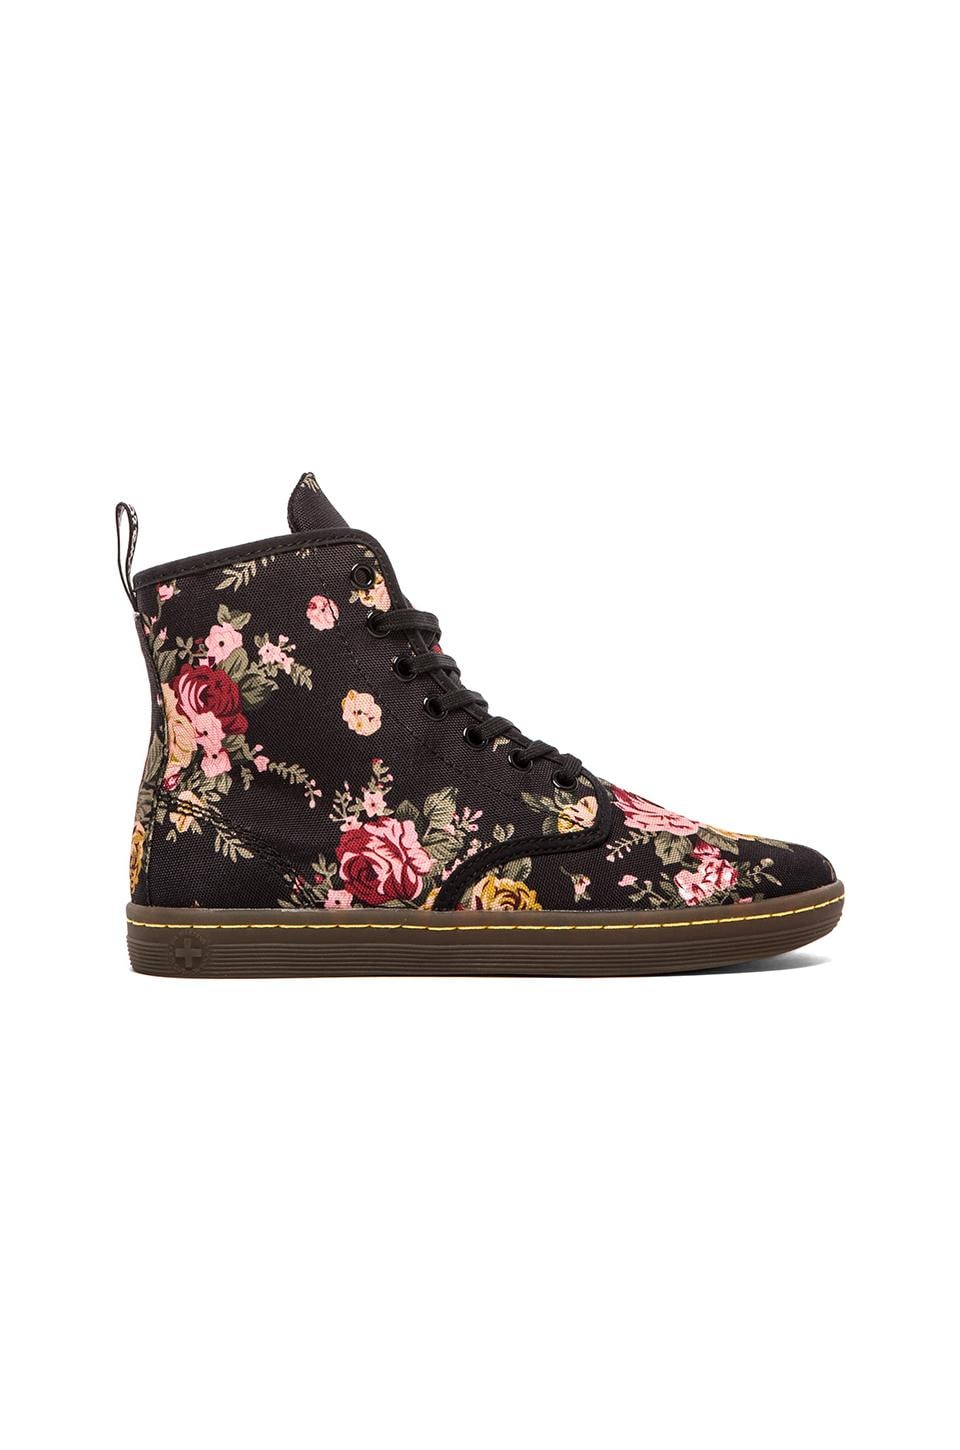 Dr. Martens Shoreditch 7-Eye Boot in Black Floral